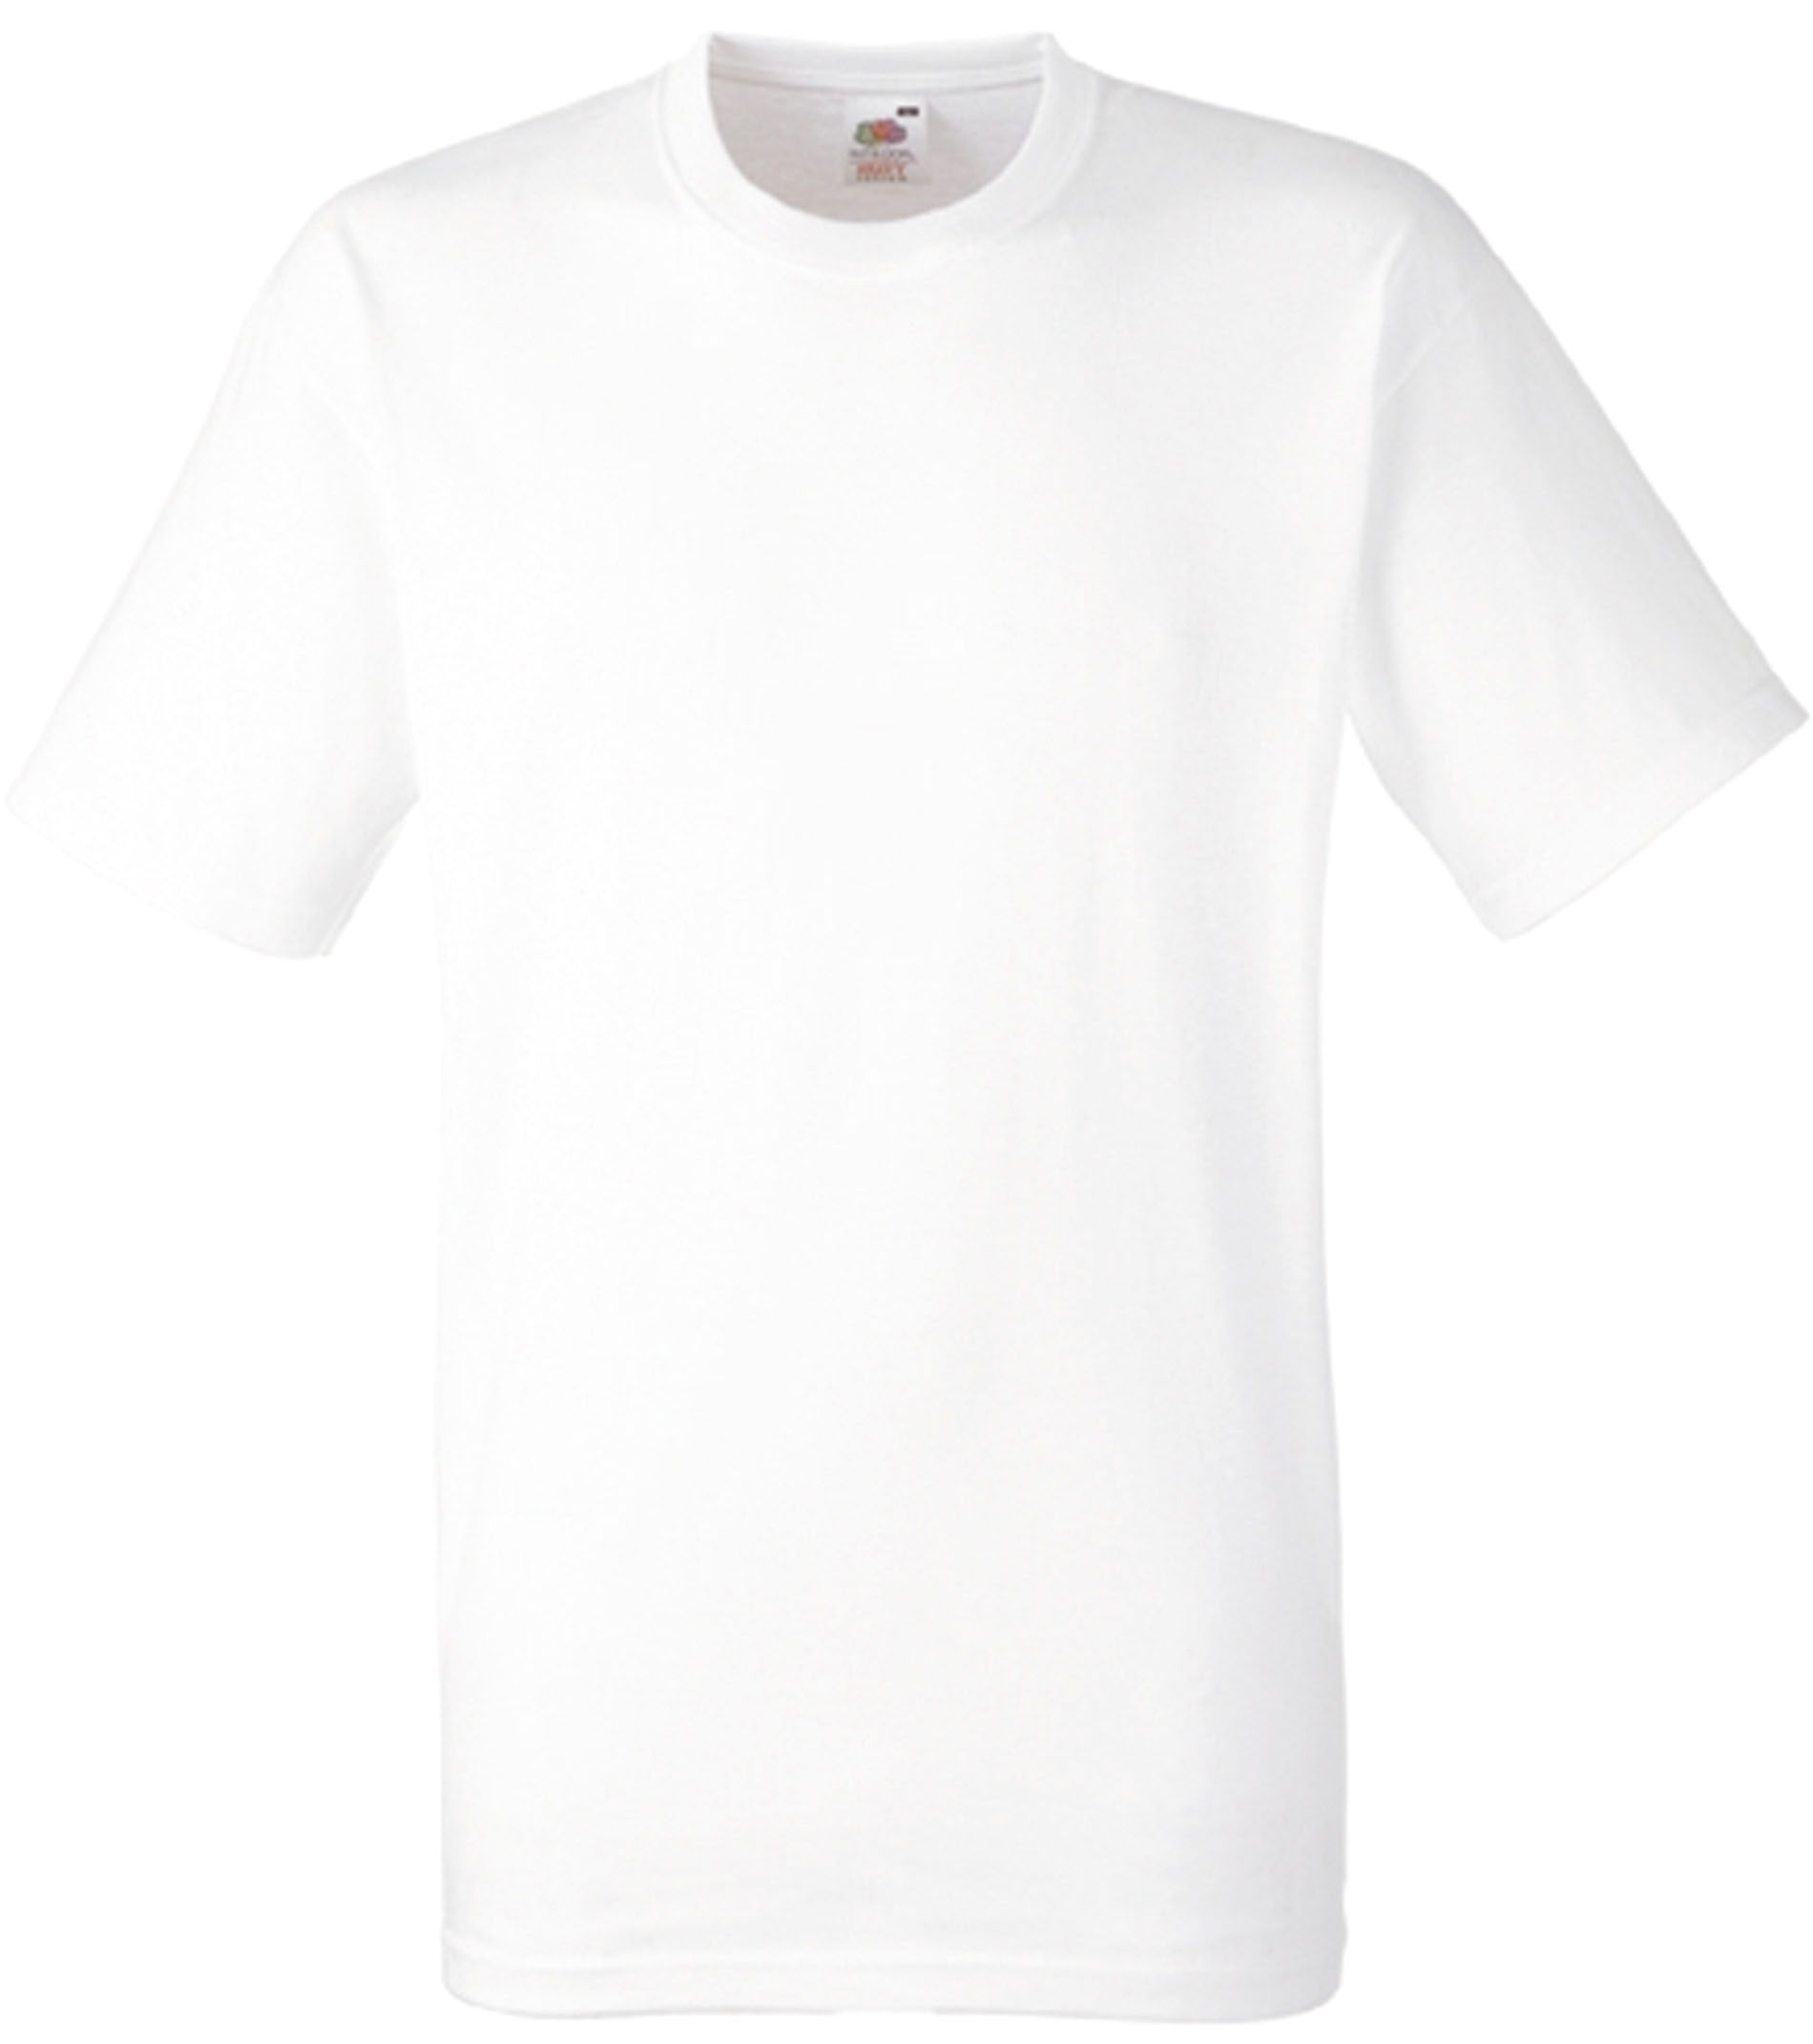 T-SHIRT LOURD HEAVY-T (61-212-0) White Blanc